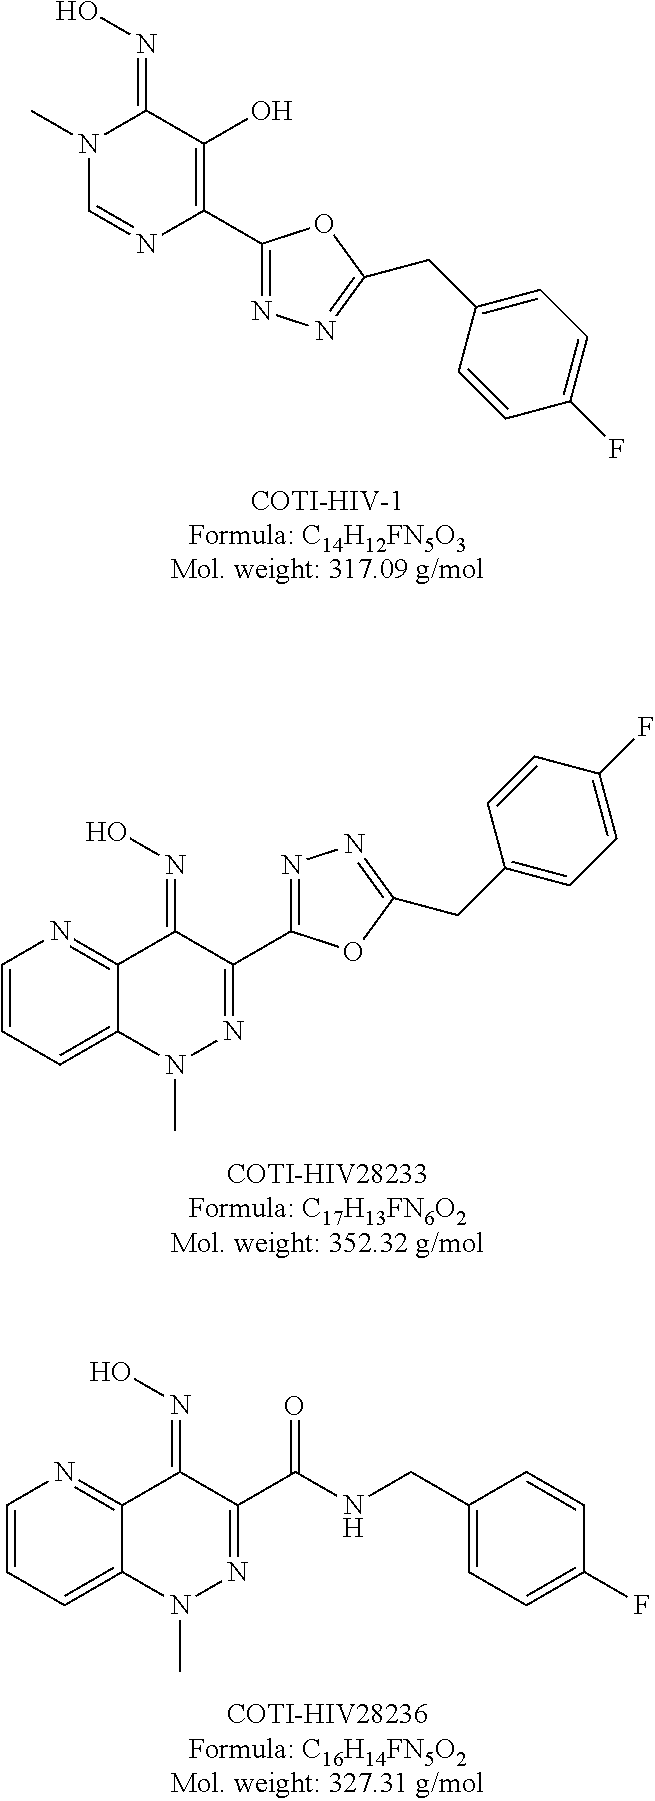 Us8987272b2 Compounds And Method For Treatment Of Hiv Google Patents Wiring Diagram Bolens 1053 Figure Us08987272 20150324 C00068